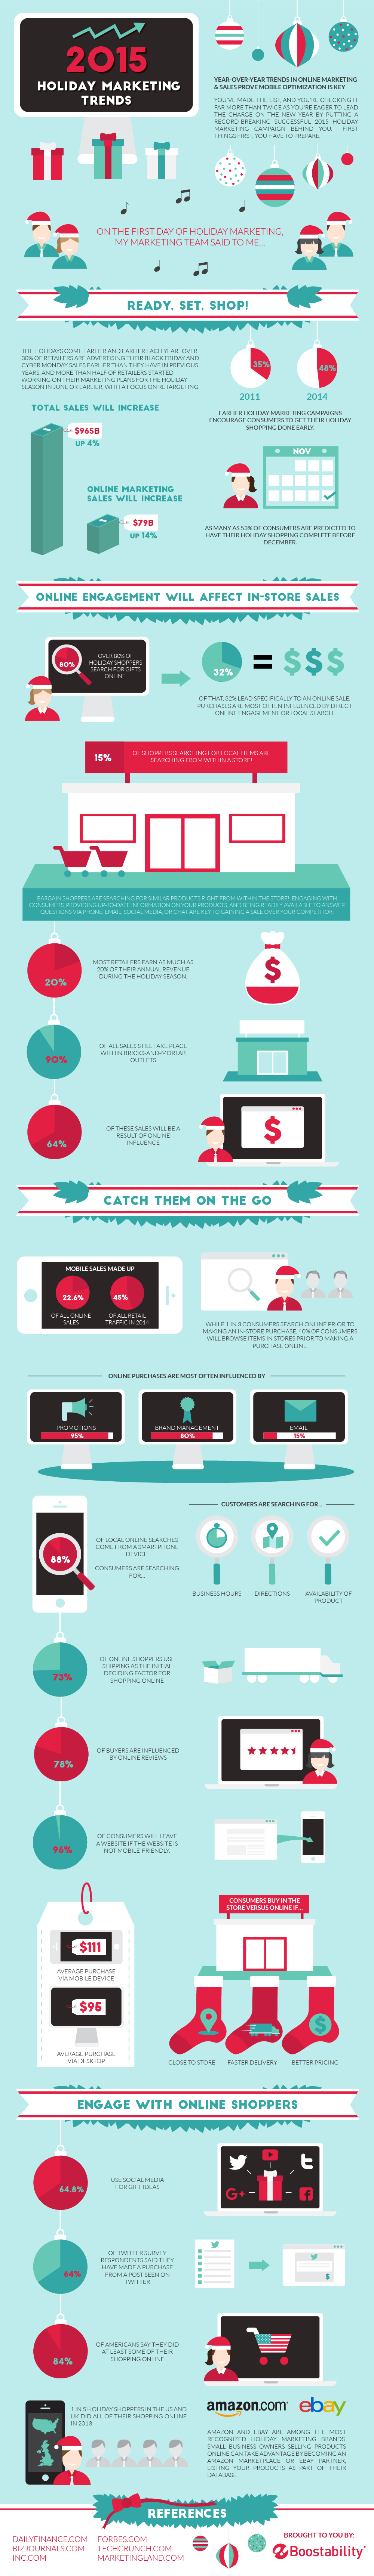 Holiday-Marketing-Trends-2015-Infographic-2-01